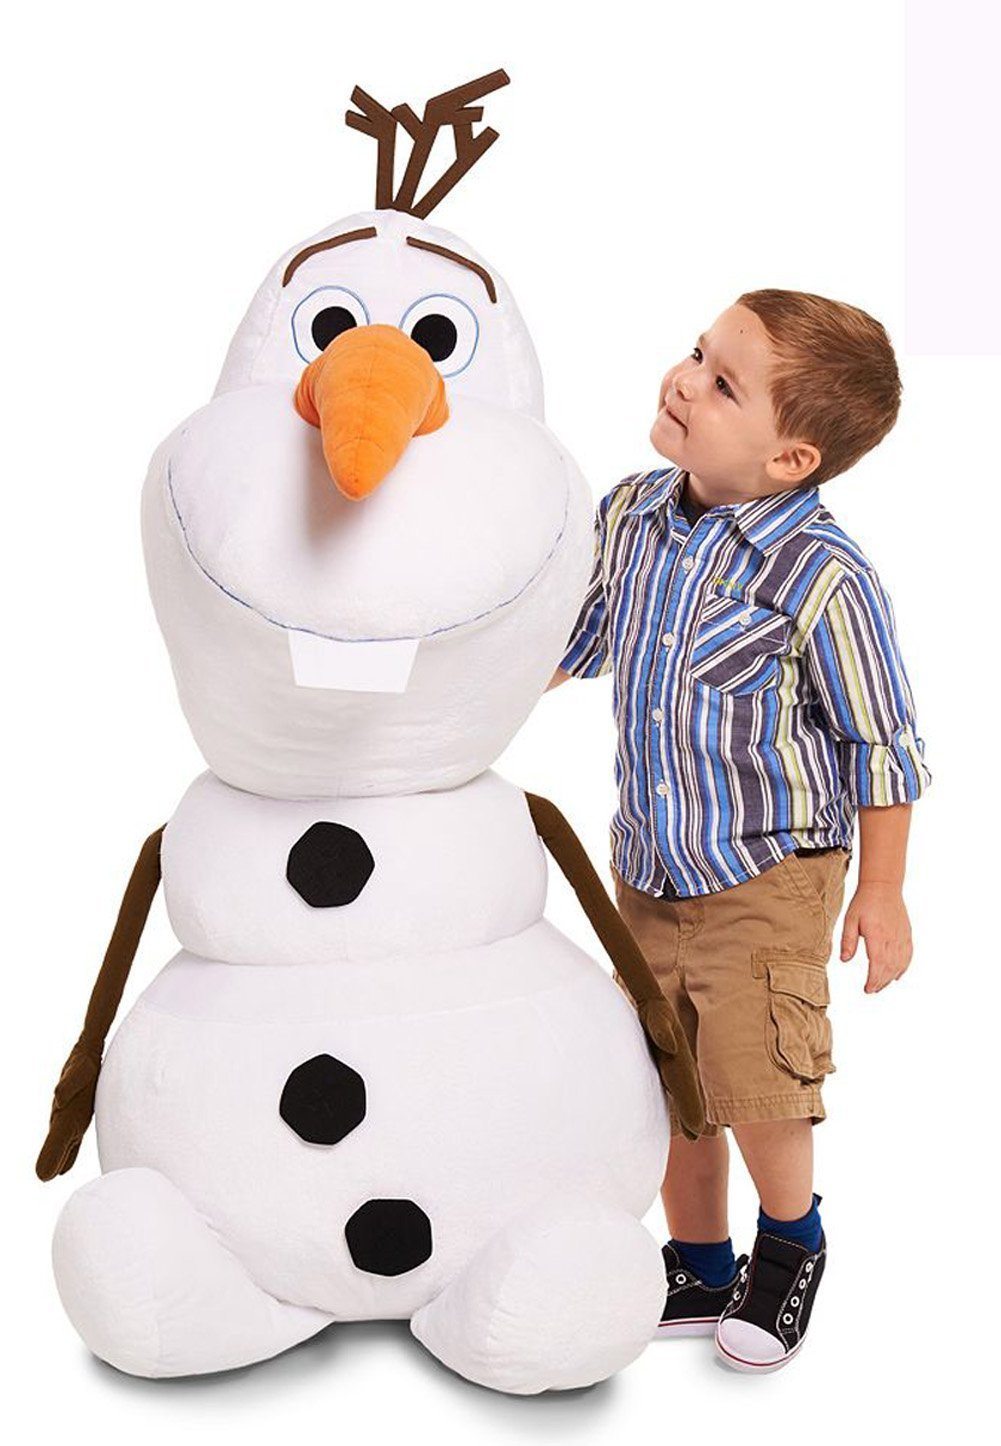 Disney Frozen Olaf Super Jumbo Plush 48 4 Tall Stuffed Snowman